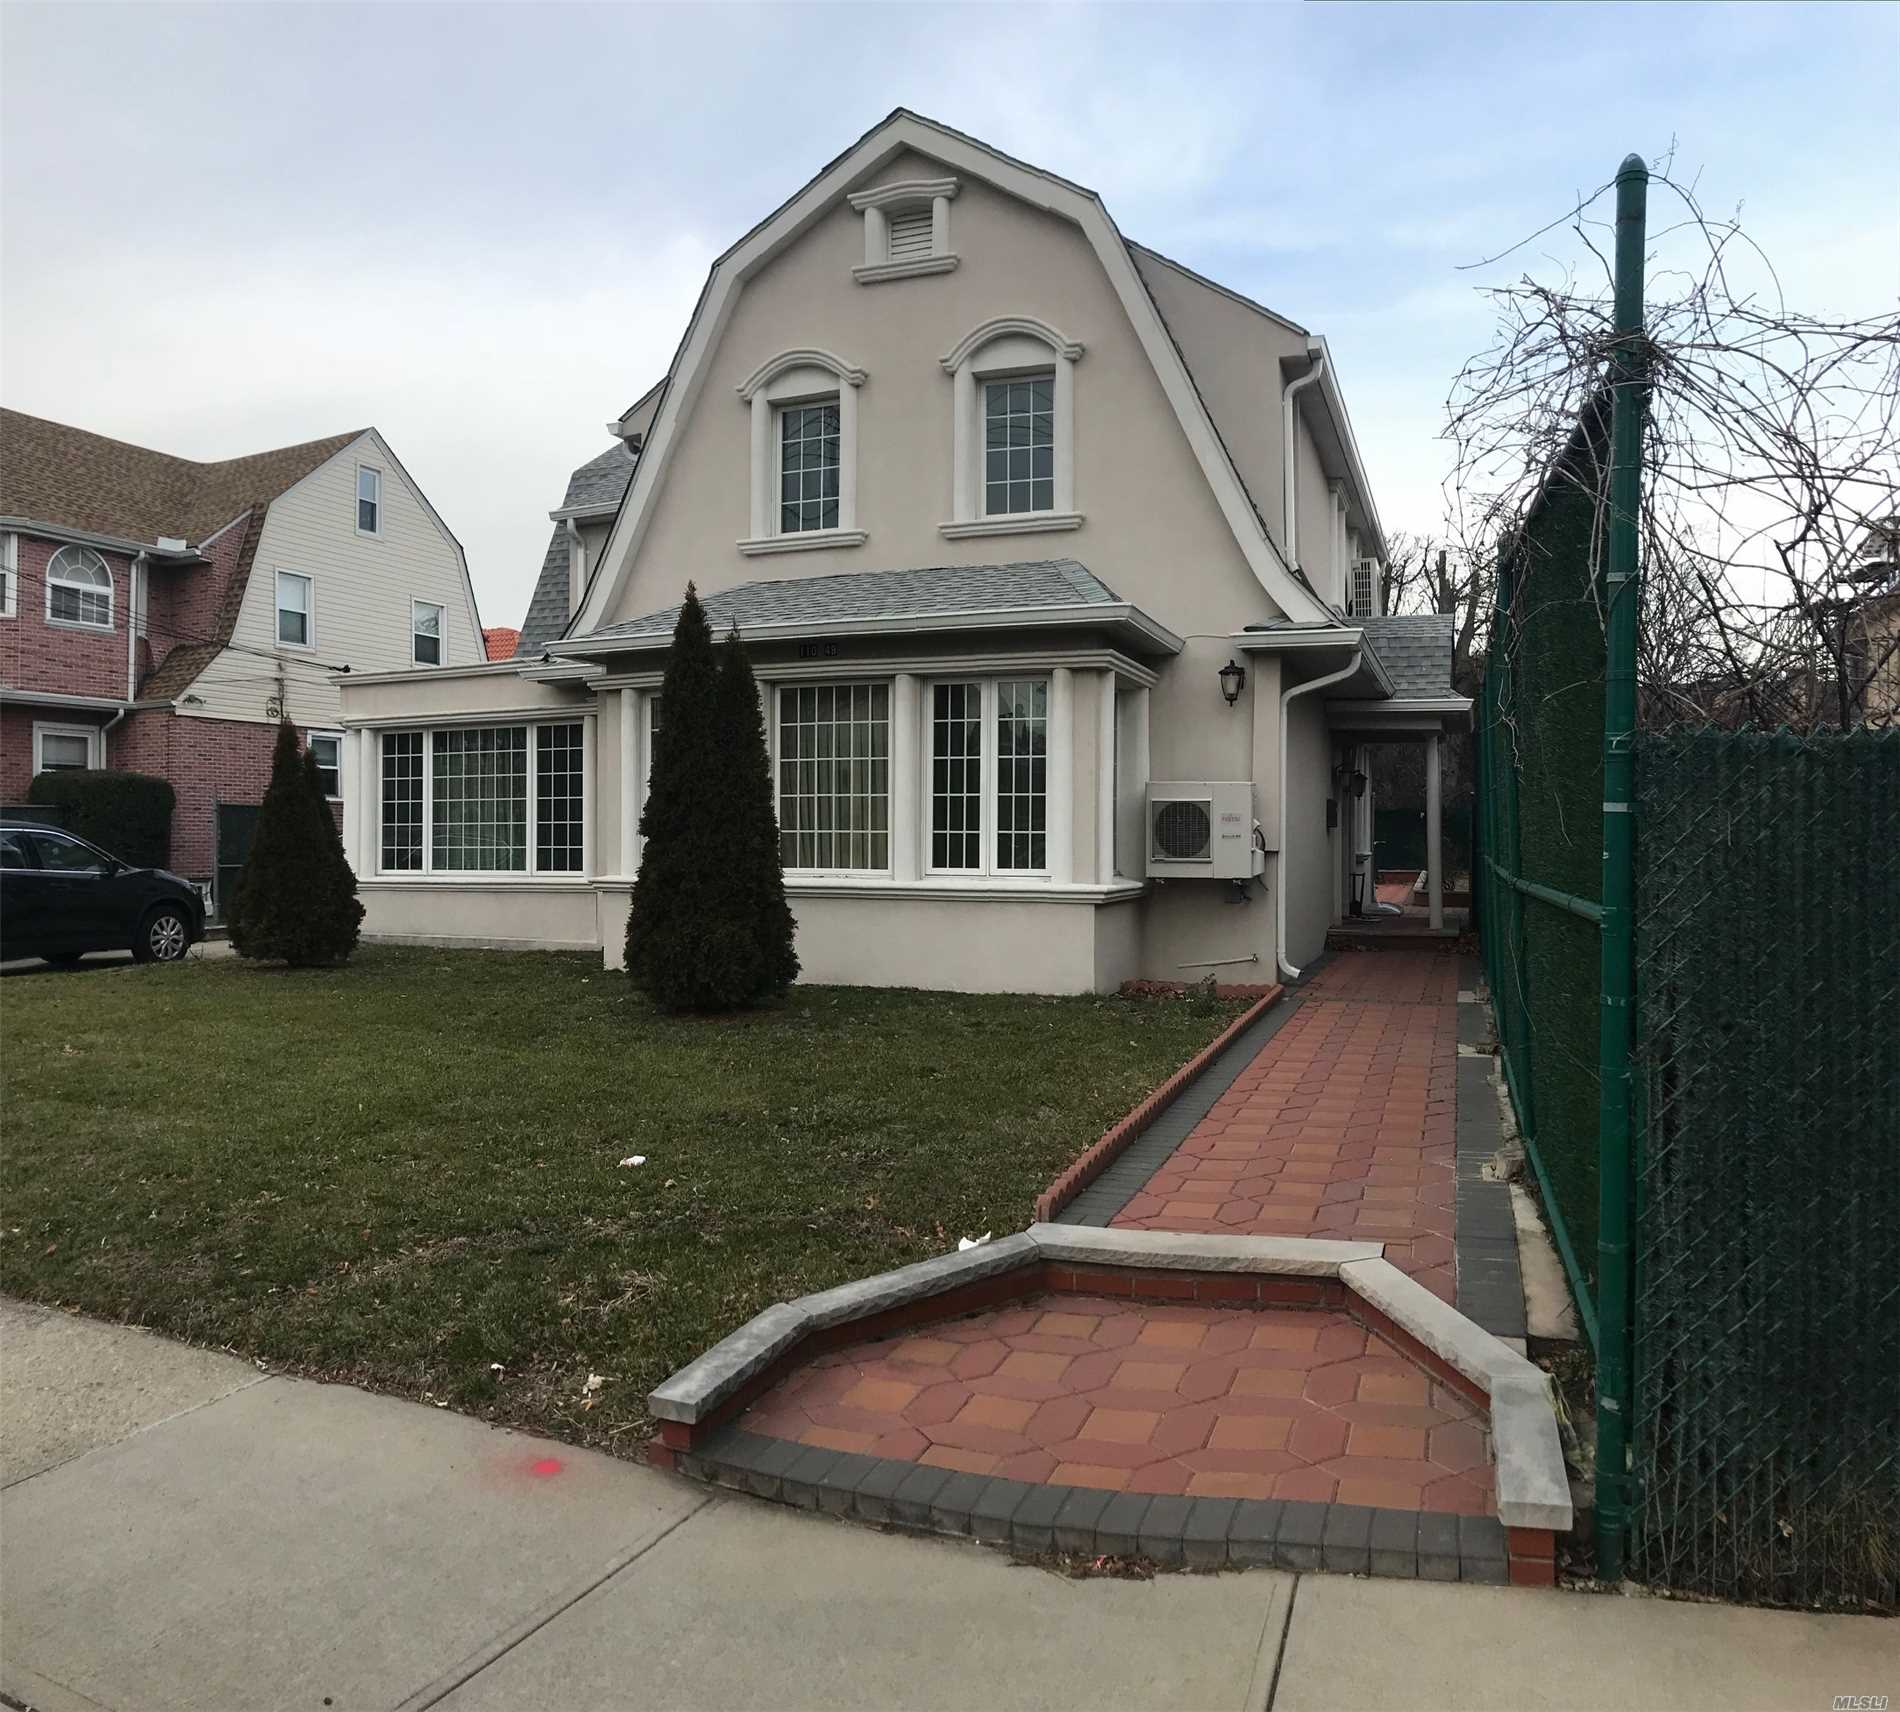 Elegant, All Renovated Single Family House In The Prime Area Of Forest Hills. 50 X 100 Lot House Features A Large Living Room With A Fireplace, Custom Designed Kitchen And Bathrooms, Beautiful Hardwood Floors, Fully Finished Basement With Sauna, Large Backyard And Detached Garage. Excellent Location, Close To Transportation, Shops, Schools.